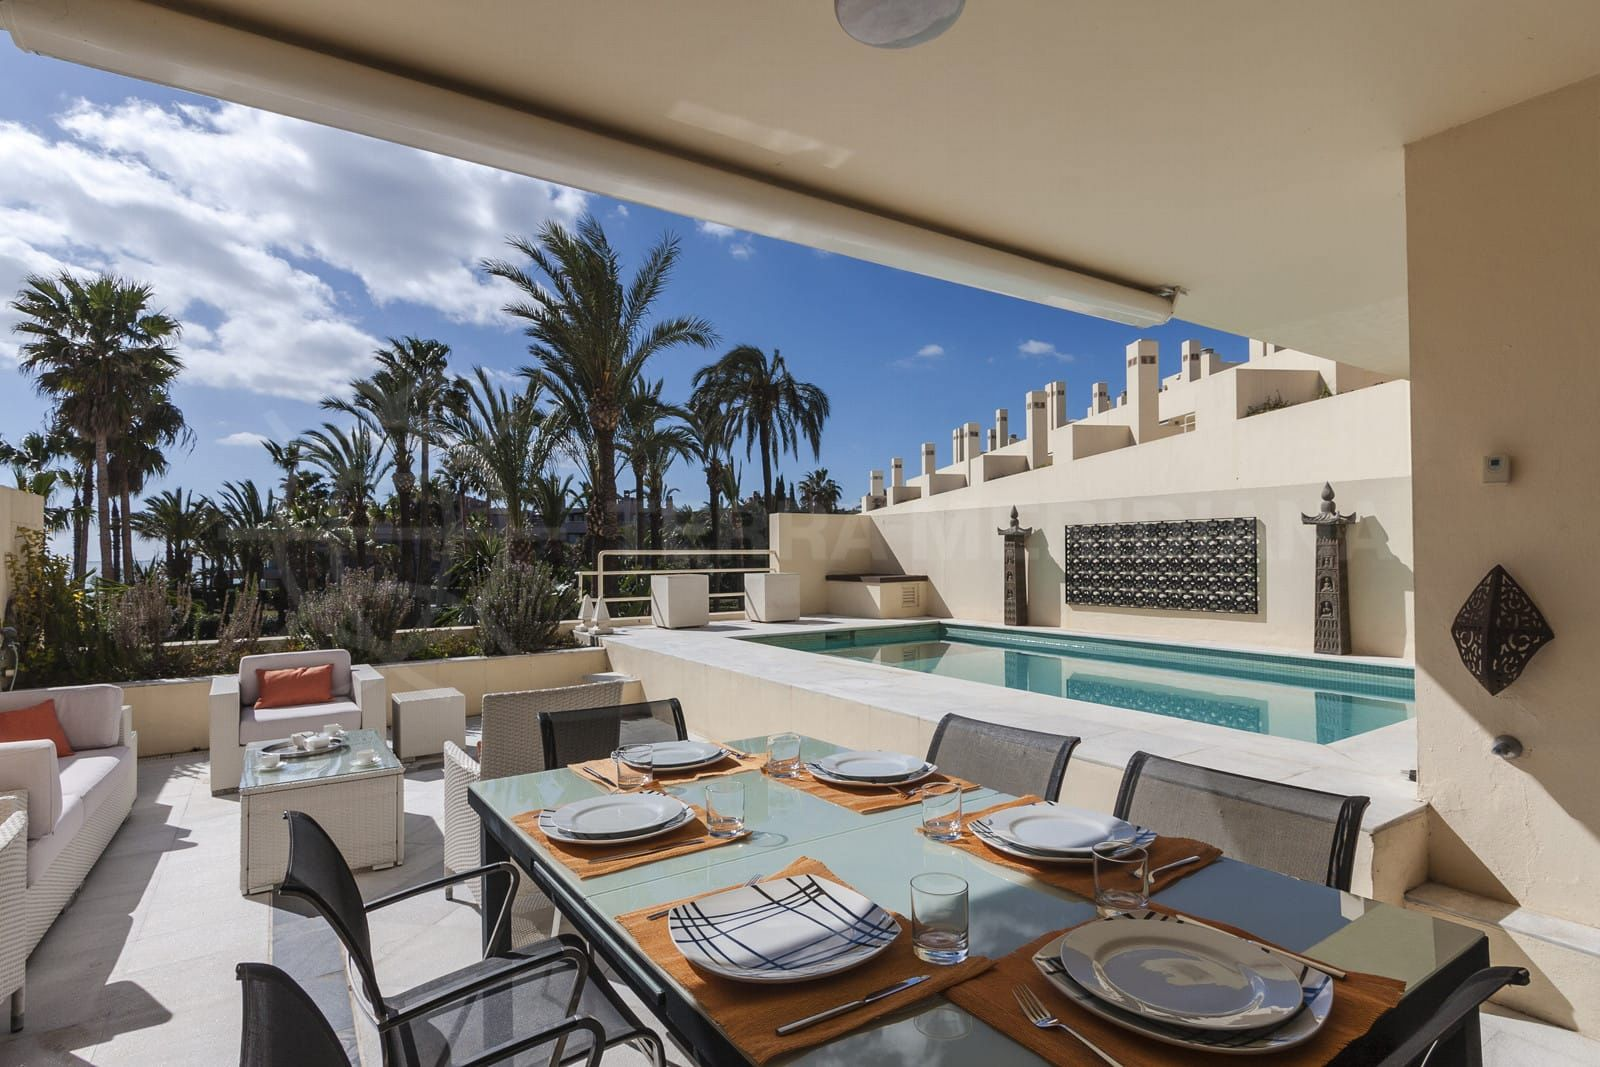 Home Improvements in Costa del Sol